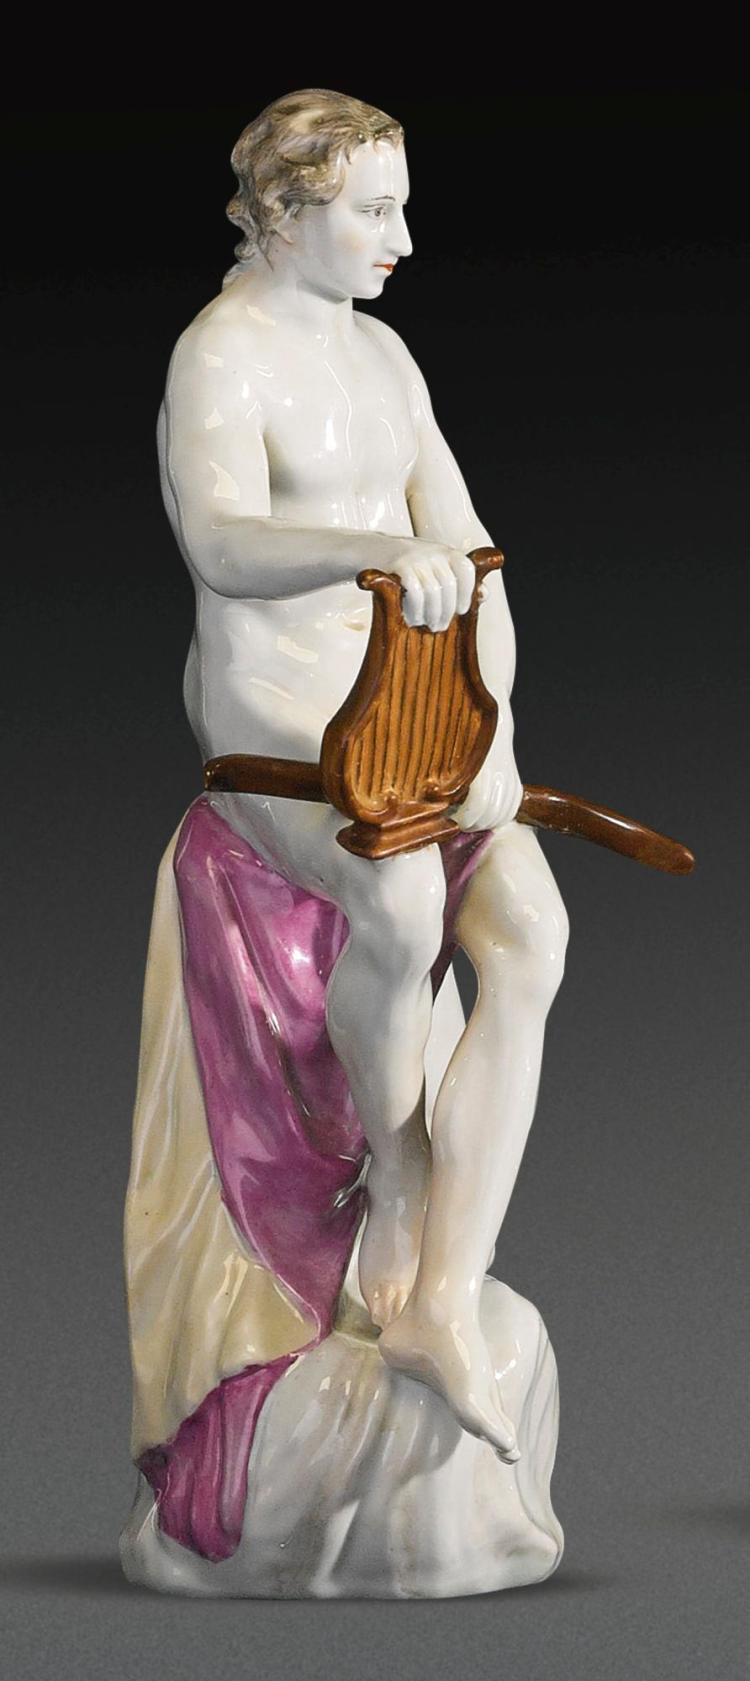 A KLOSTER VEILSDORF PORCELAIN FIGURE OF APOLLO FROM THE 'SEVEN PLANETS' SERIES, CIRCA 1765  